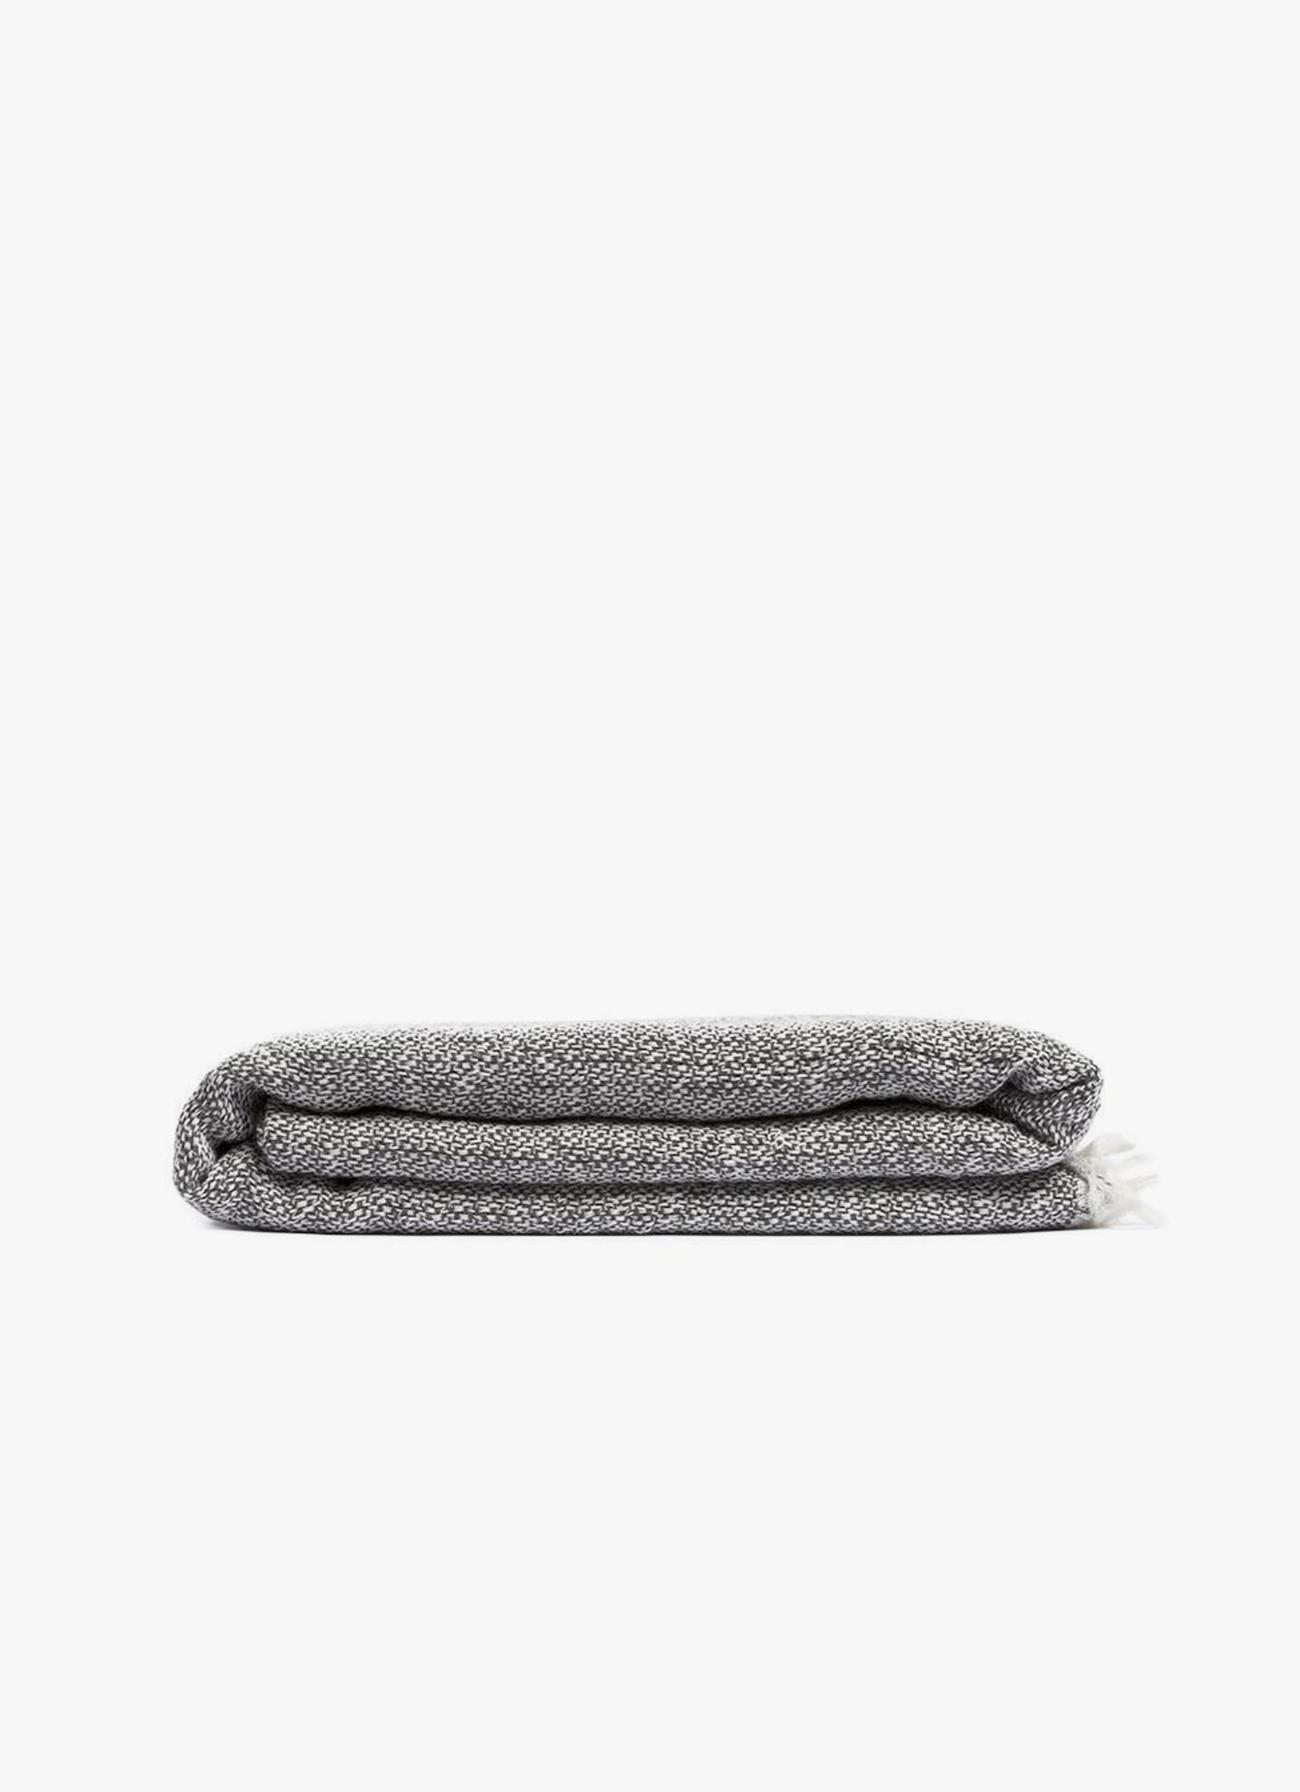 By Mölle - Merino Wool Wrap - Graphite - off white - 140 x 180cm